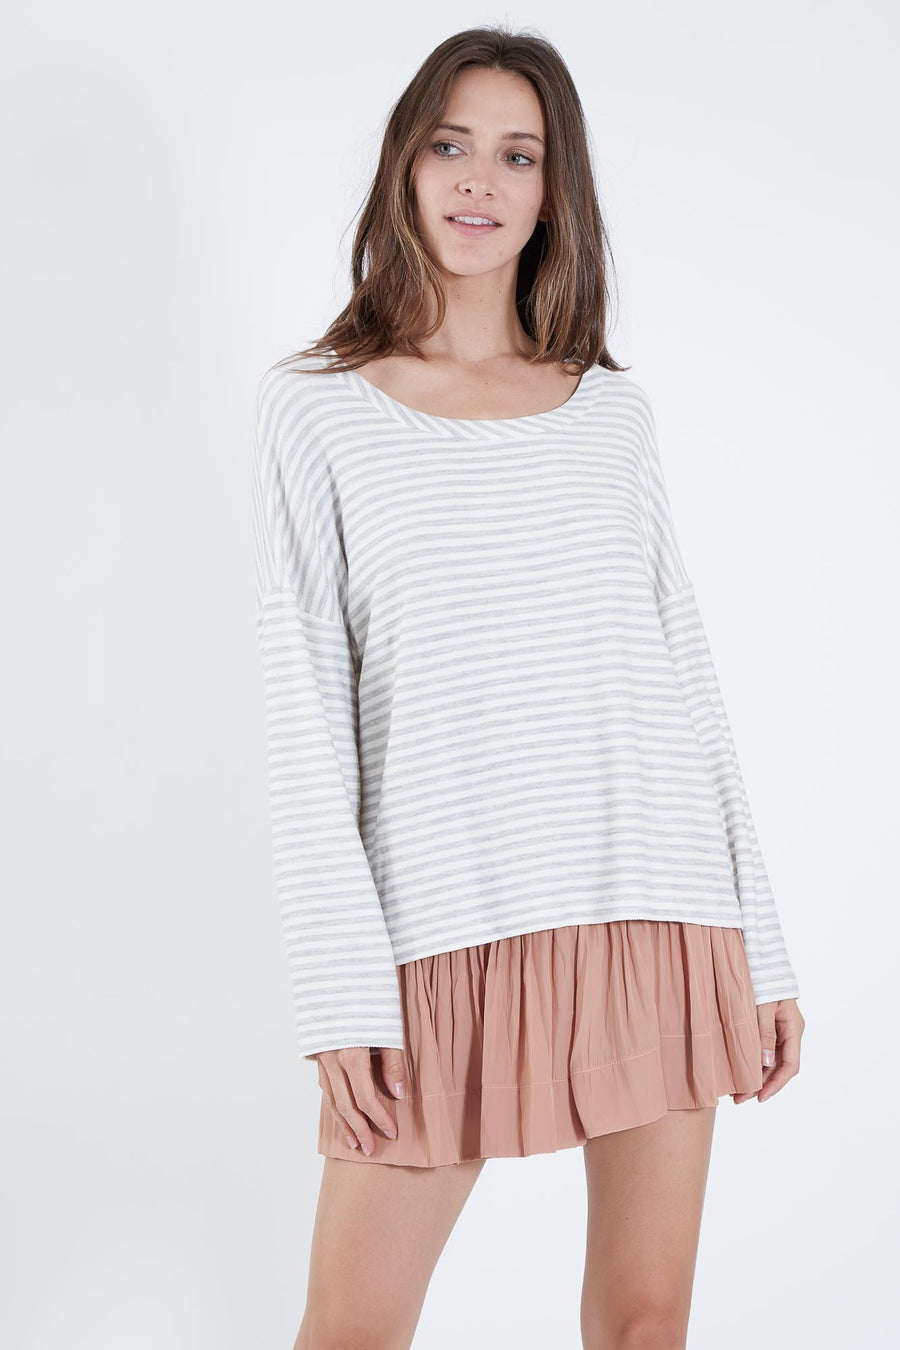 GODFREY TOP GREY STRIPE  *LIMITED*EDITION*